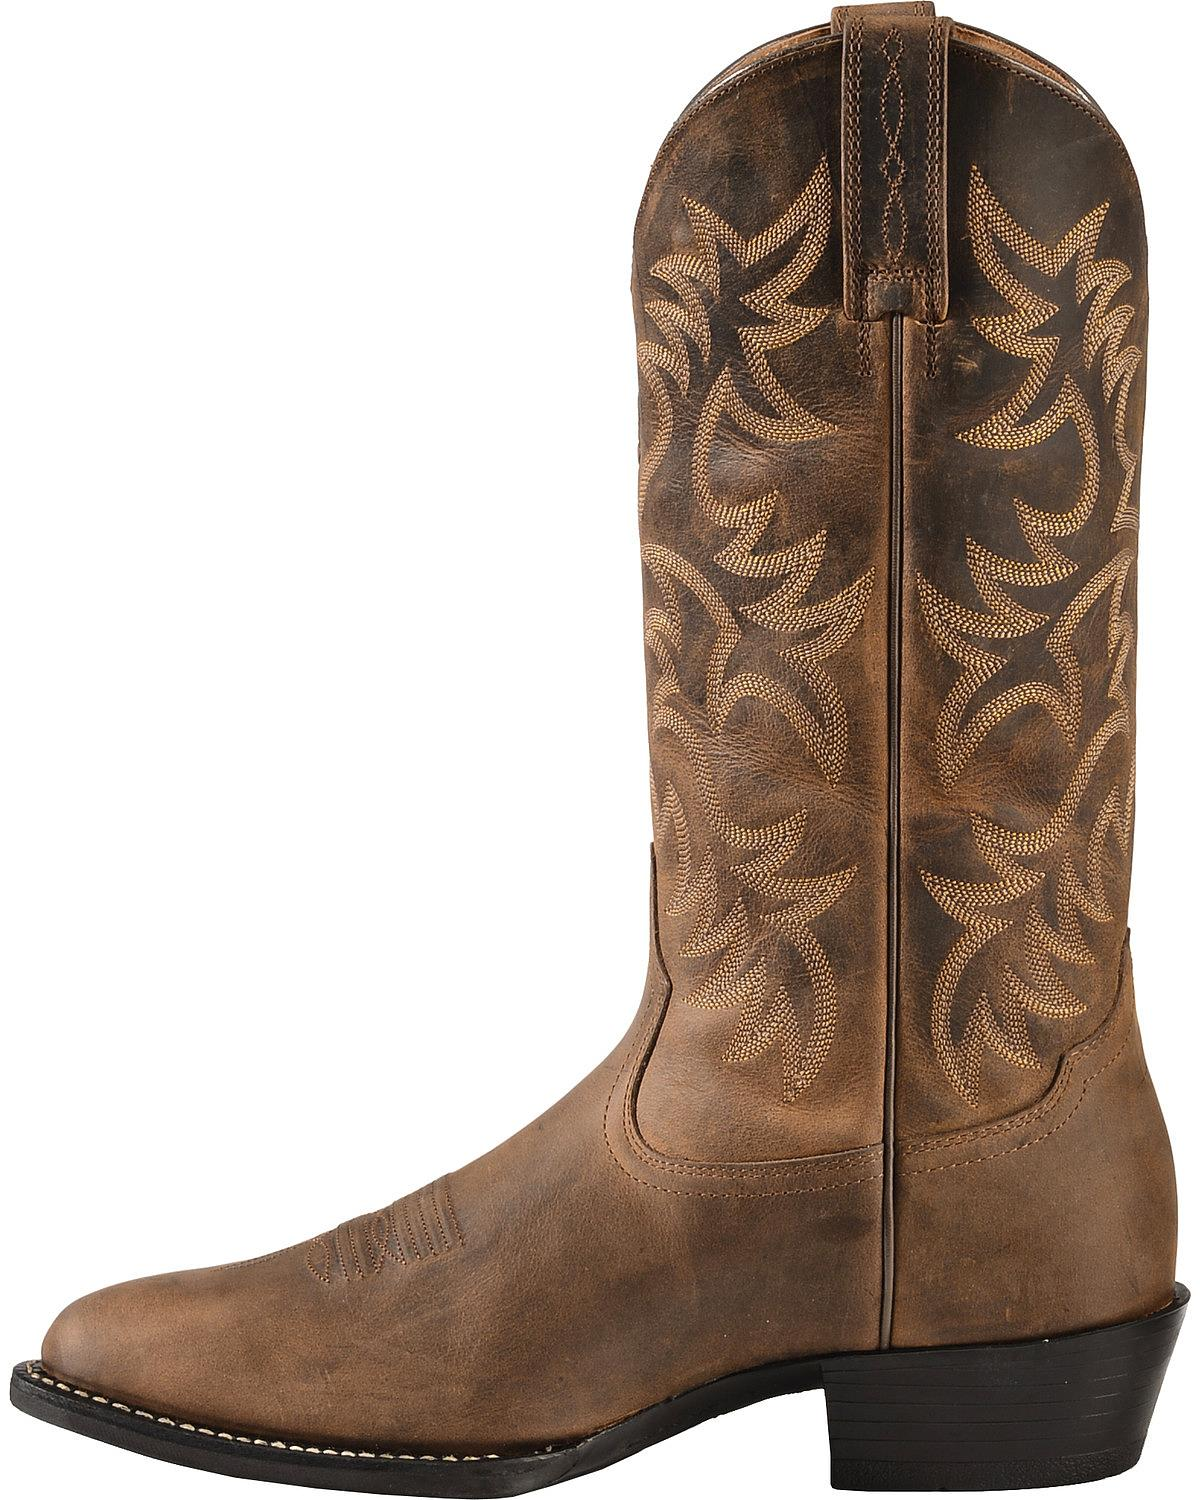 Ariat Men's Western Heritage R Toe Affordable and personalized shoes